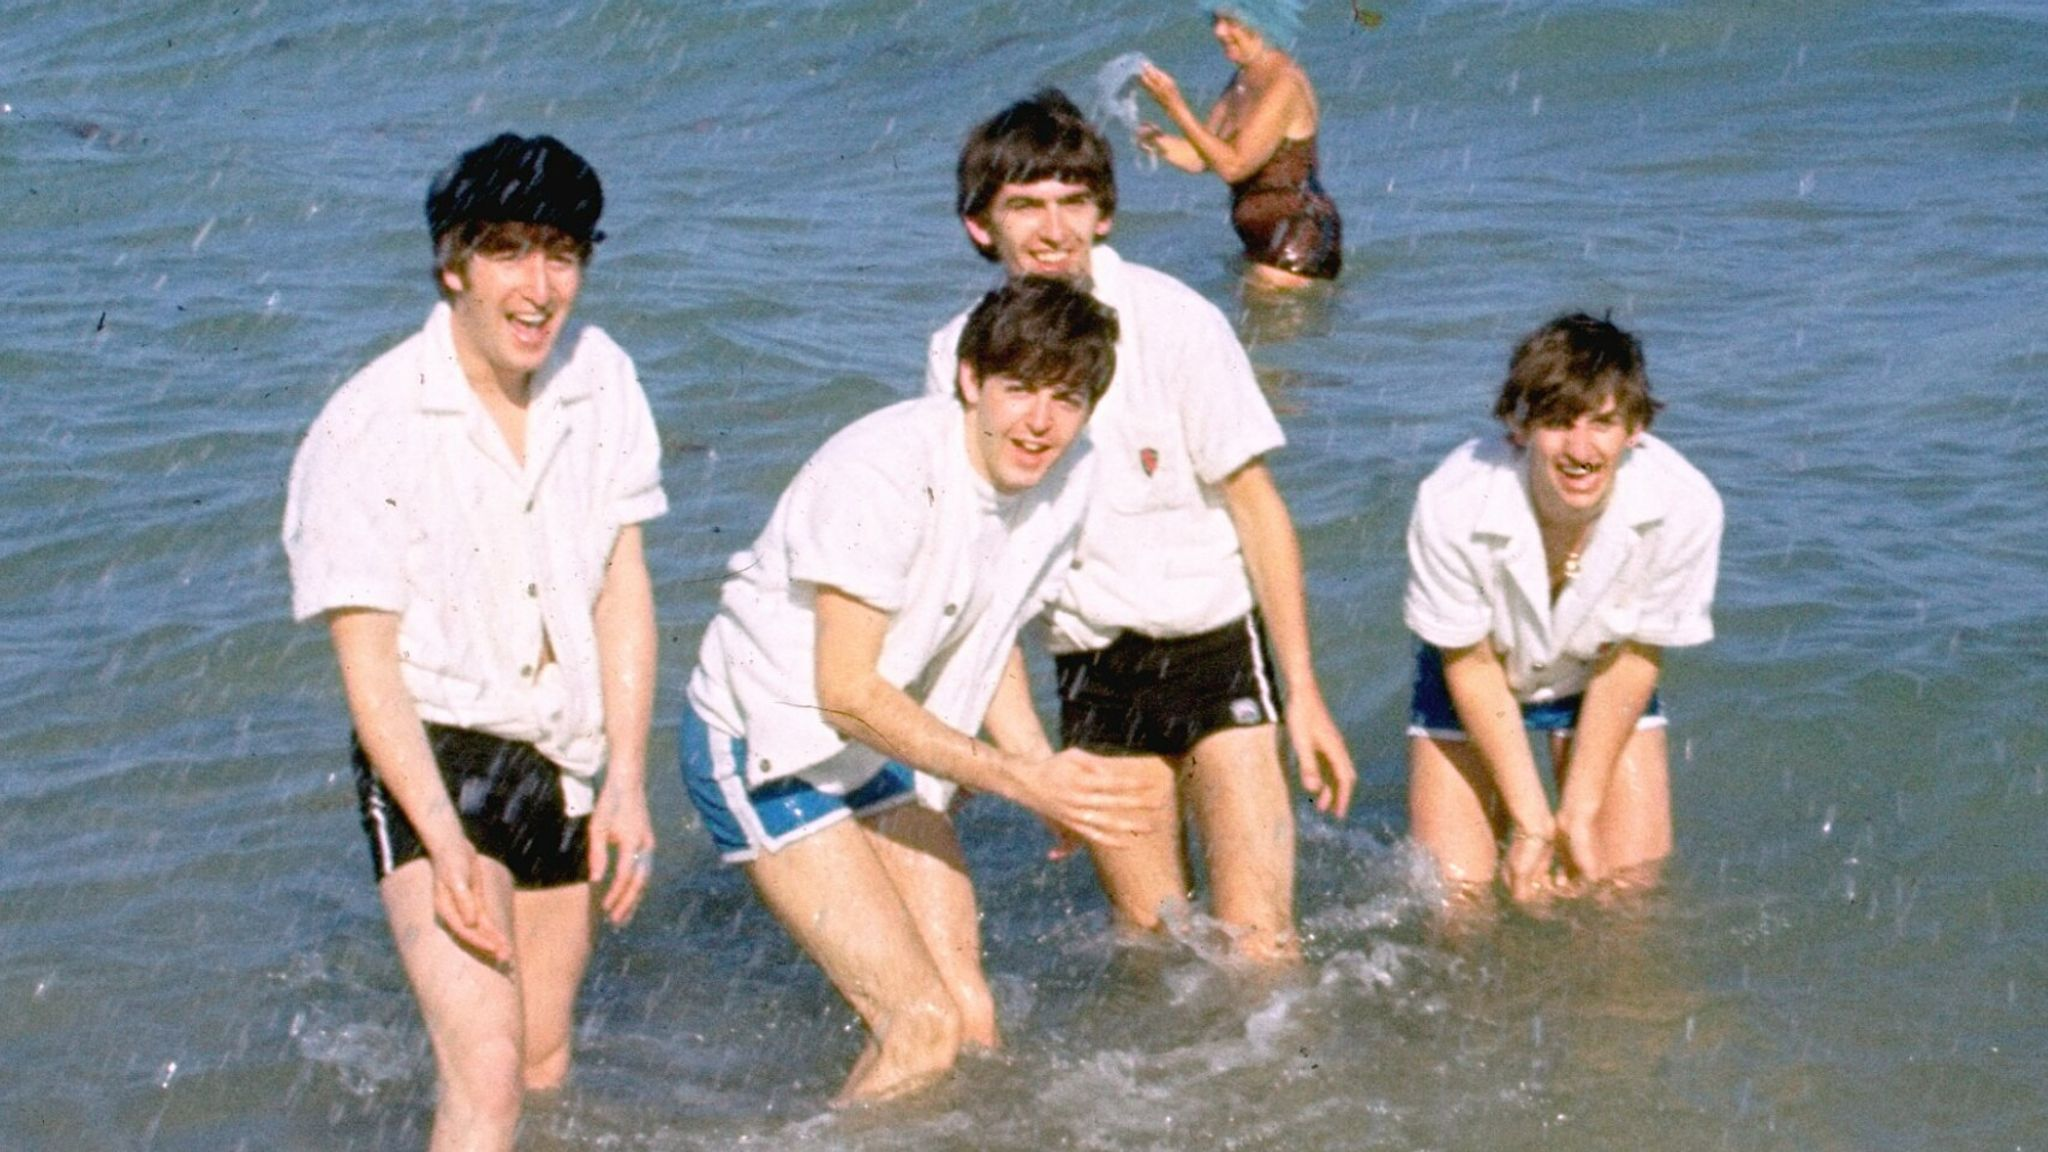 The Beatles - John Lennon, Paul McCartney, George Harrison and Ringo Starr - in the water in Nassau, Bahamas, during filming of Help! in 1965. Pic: AP